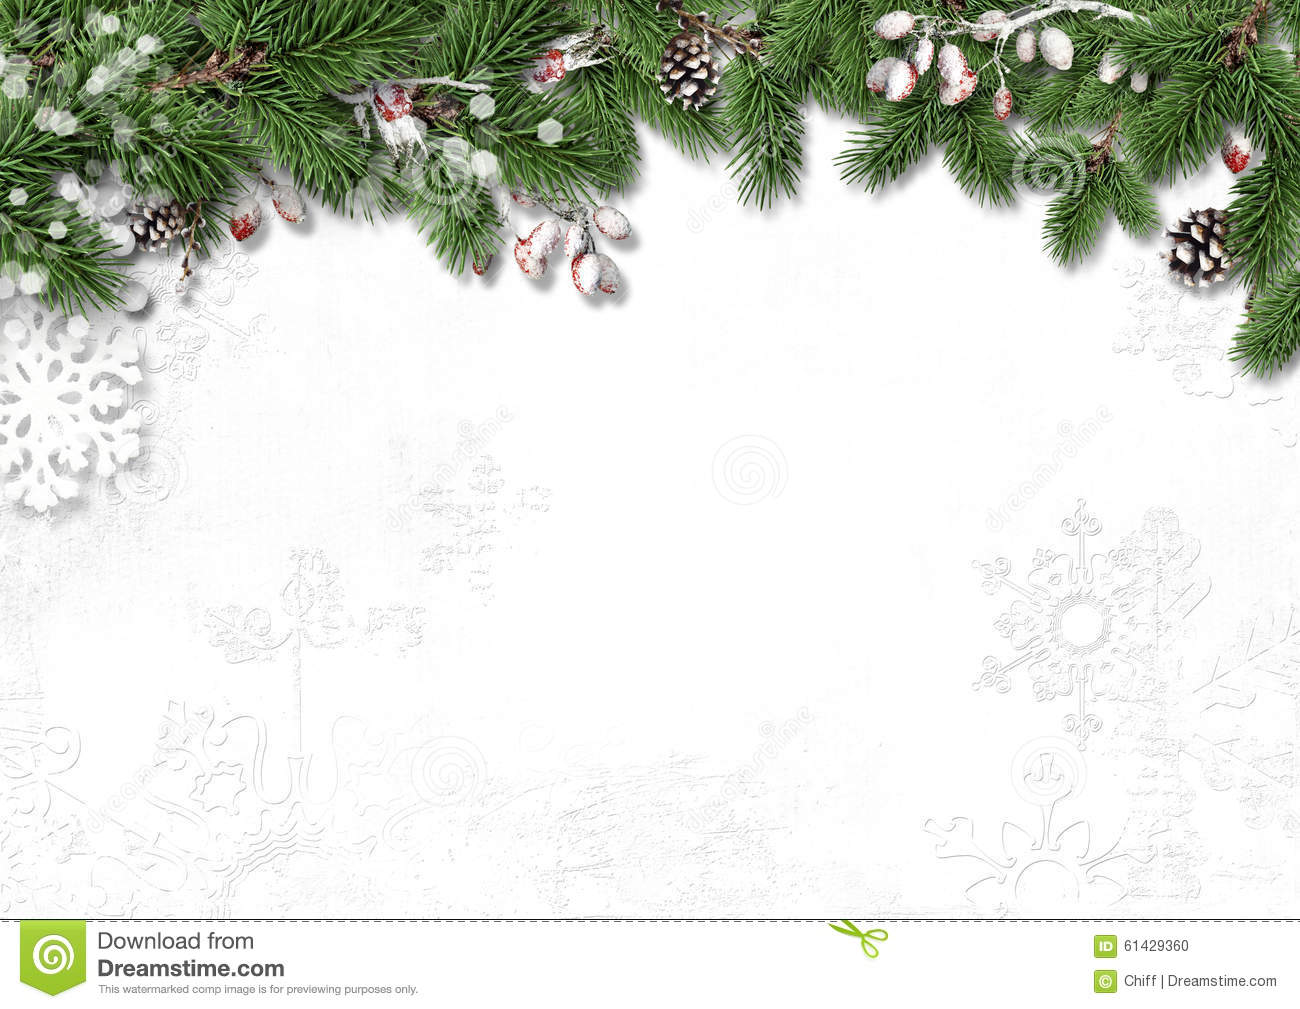 Christmas white background with decorations, holly and branches